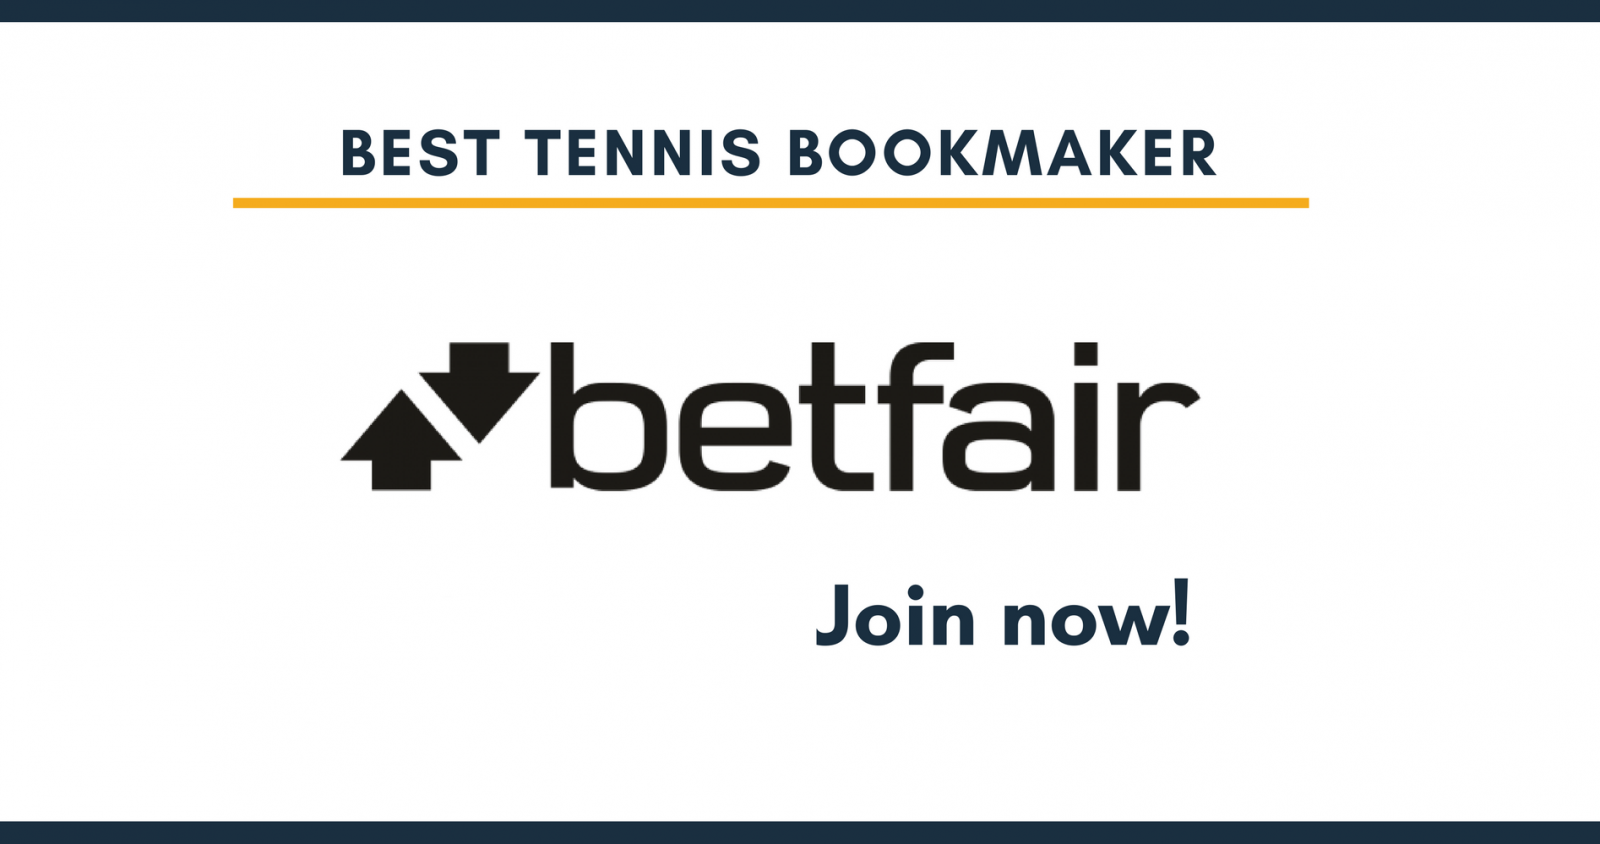 Best tennis bookmaker Betfair